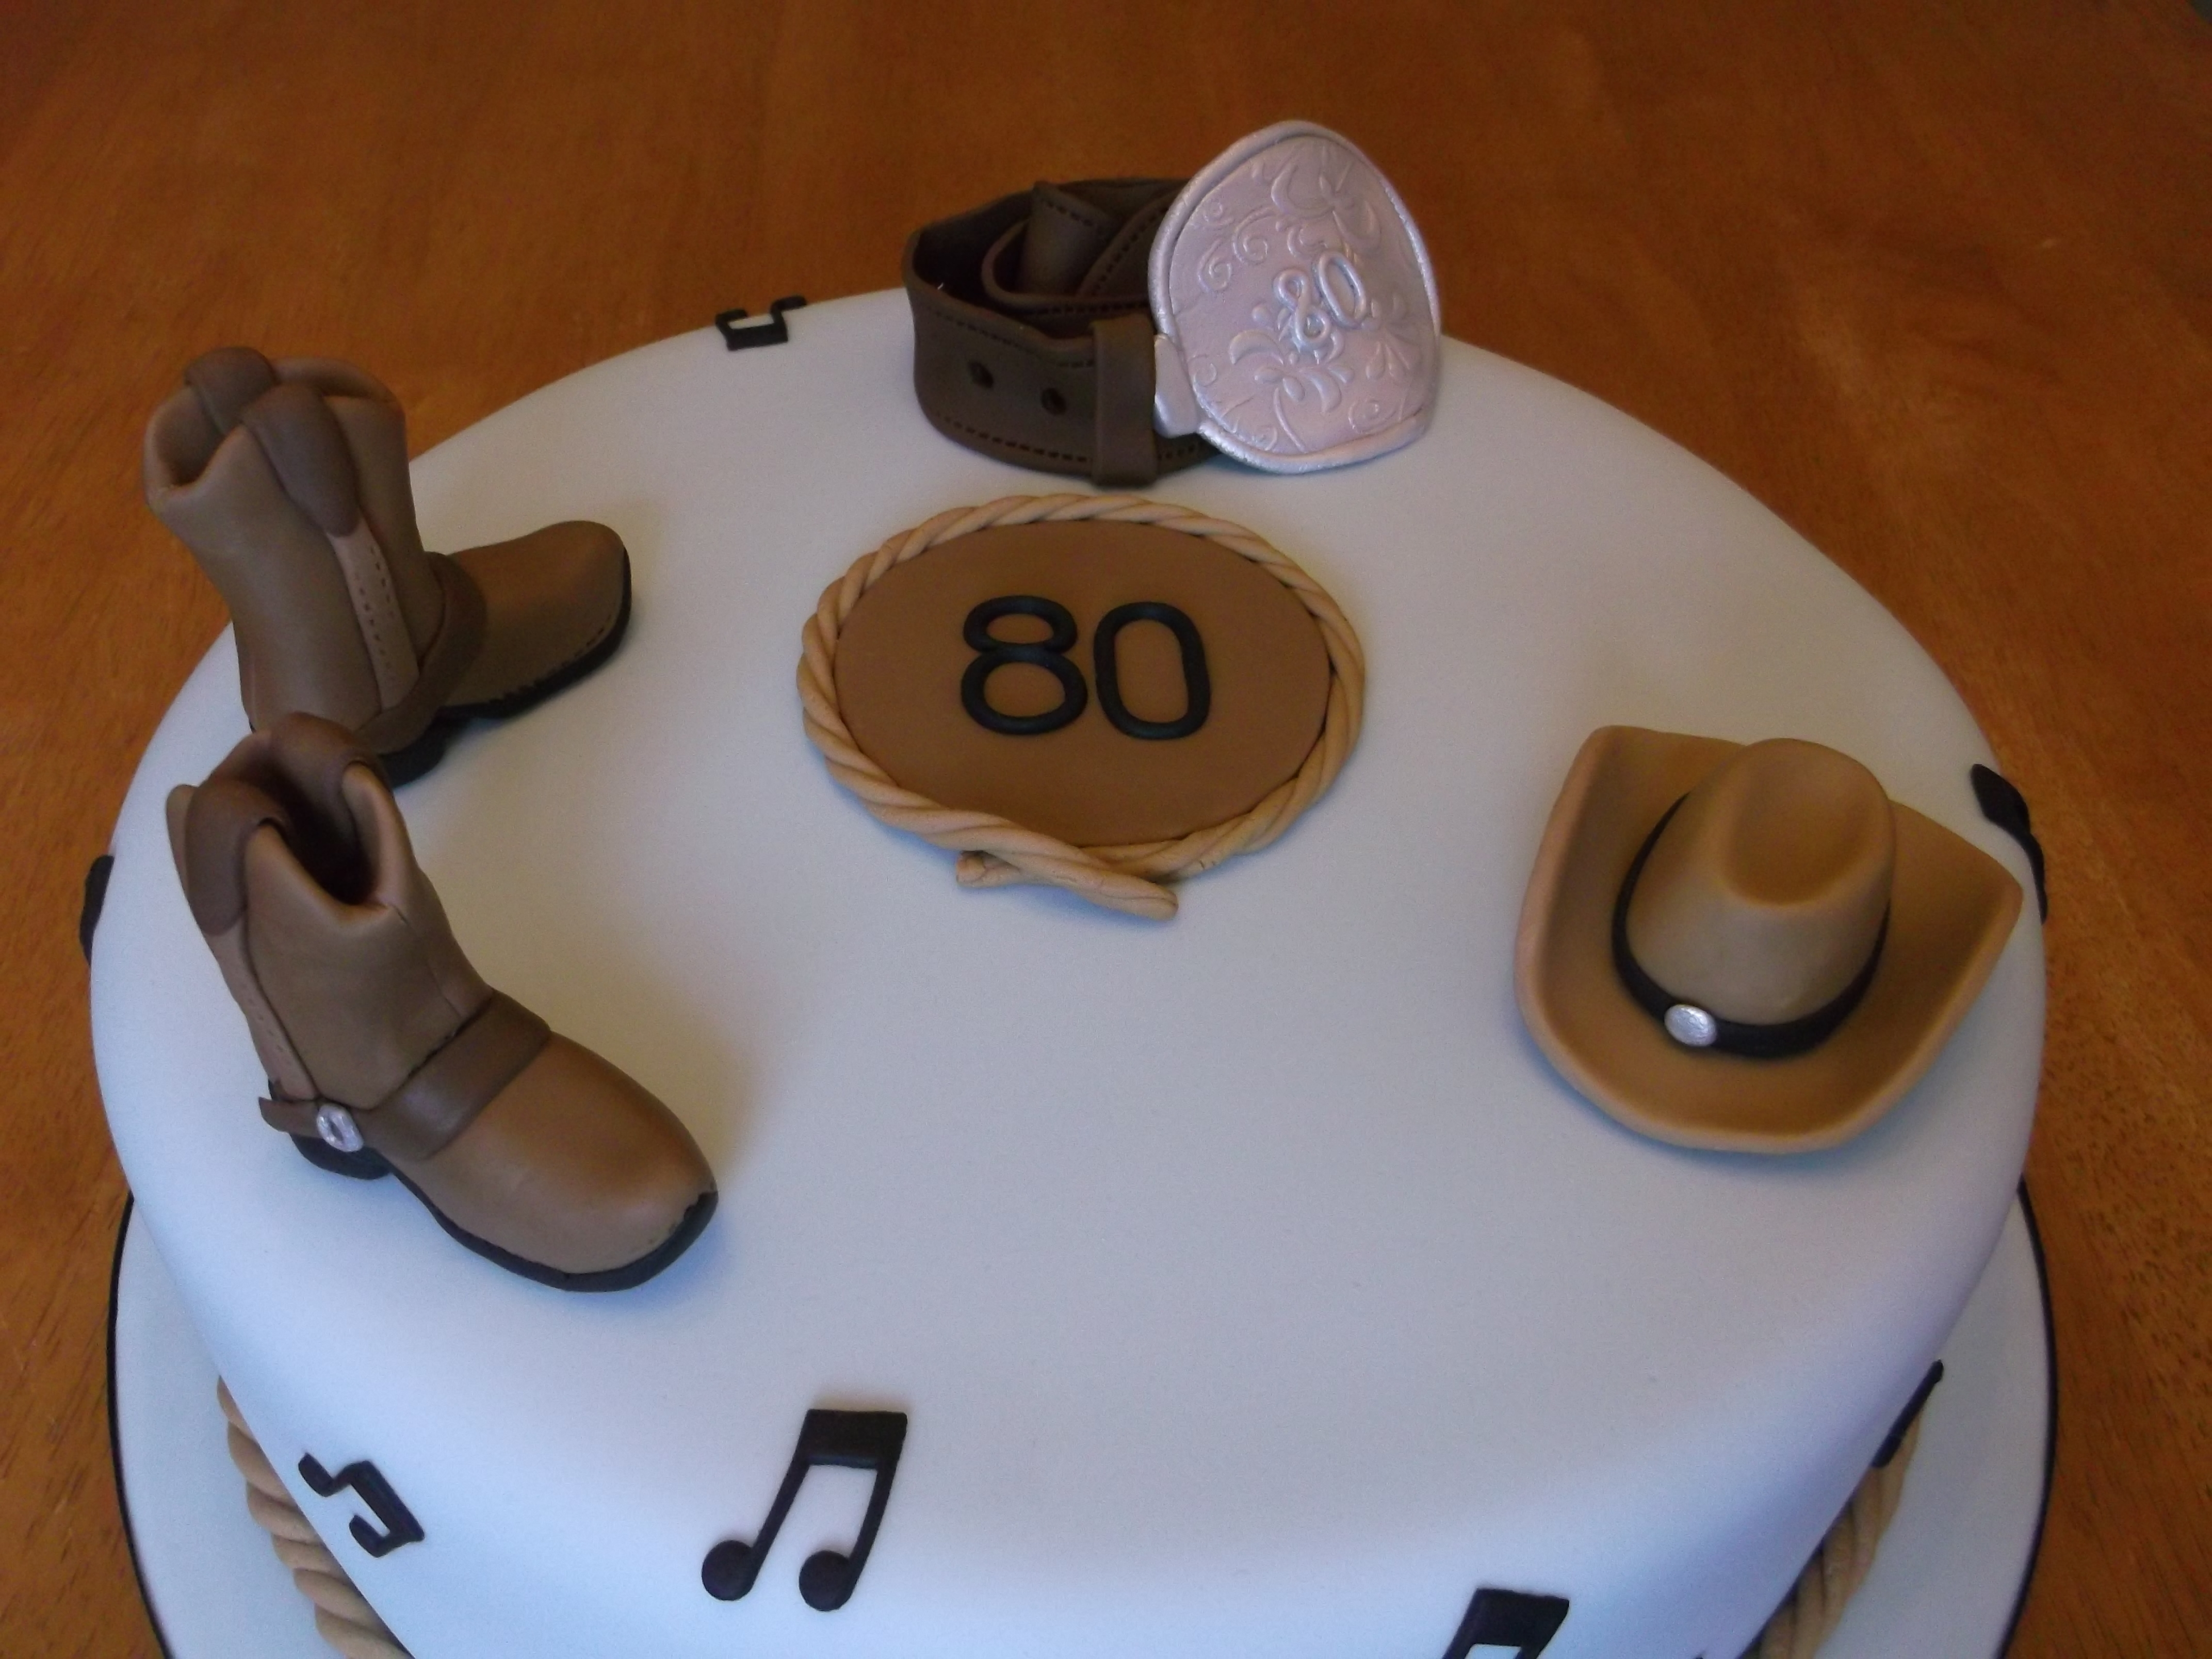 Wondrous Country And Western Cake Cakecentral Com Funny Birthday Cards Online Barepcheapnameinfo